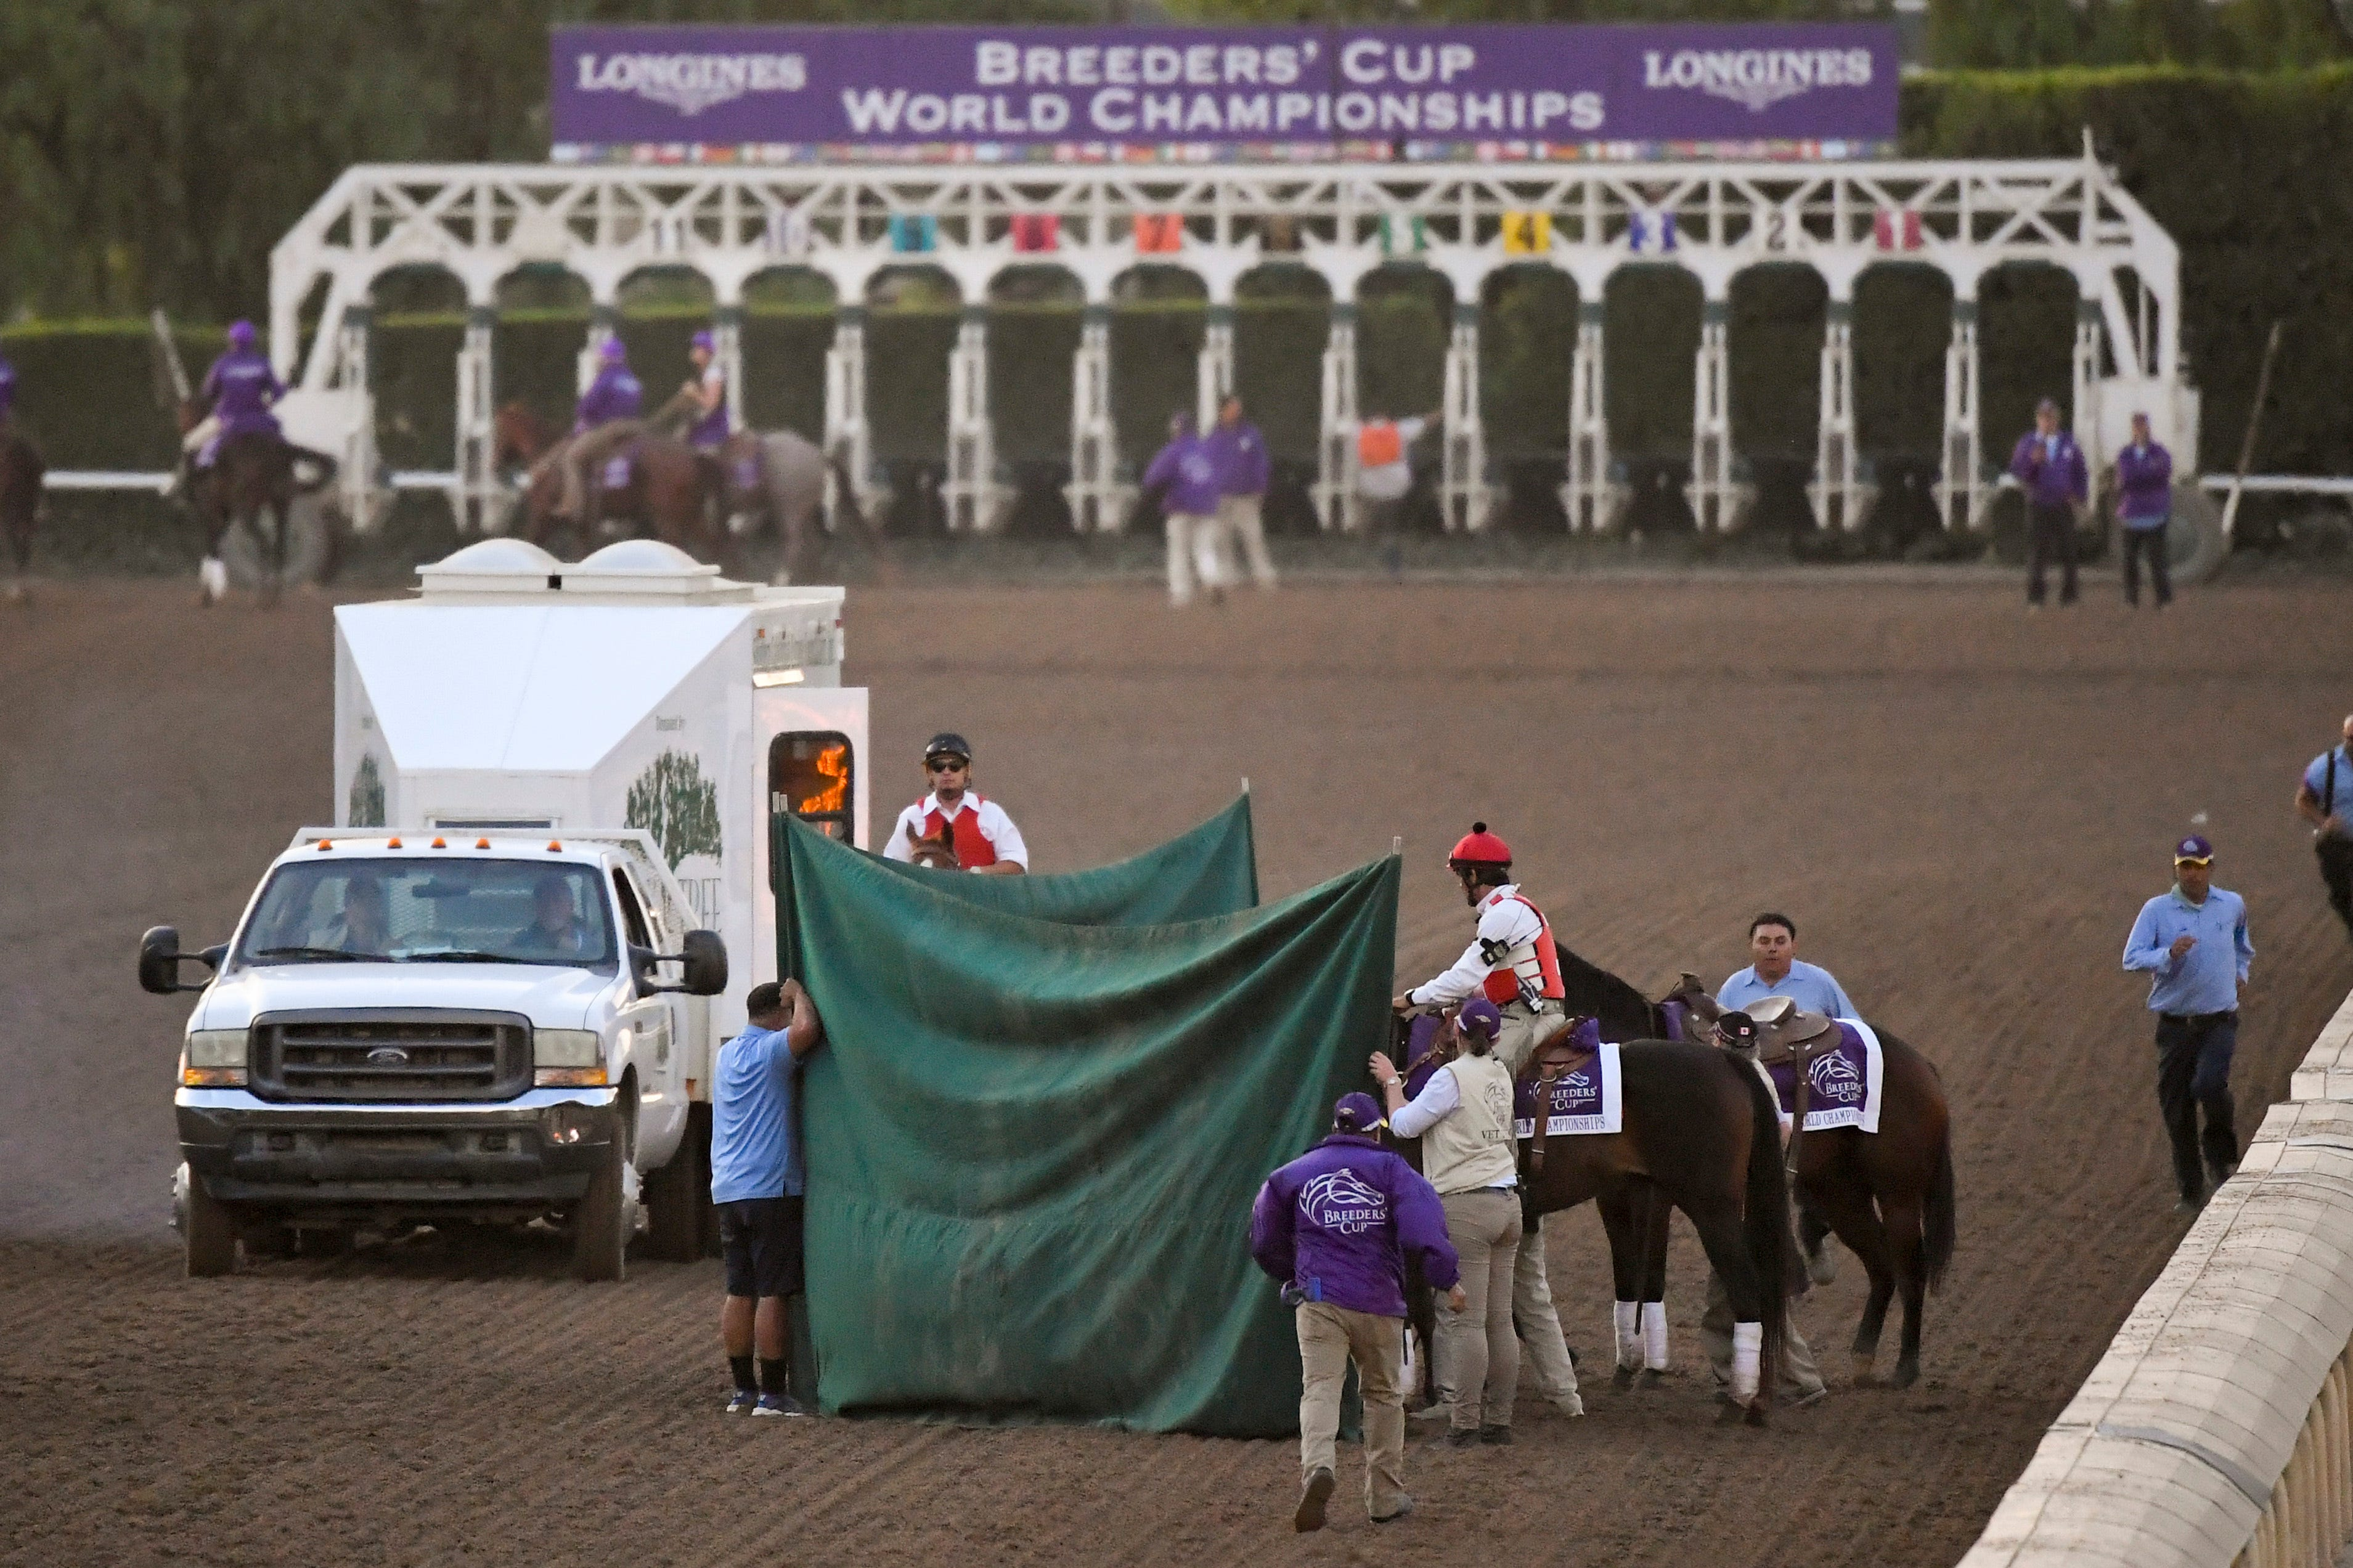 Mongolian Groom euthanized after Breeders  Cup Classic injury; 37th horse to die at Santa Anita since December